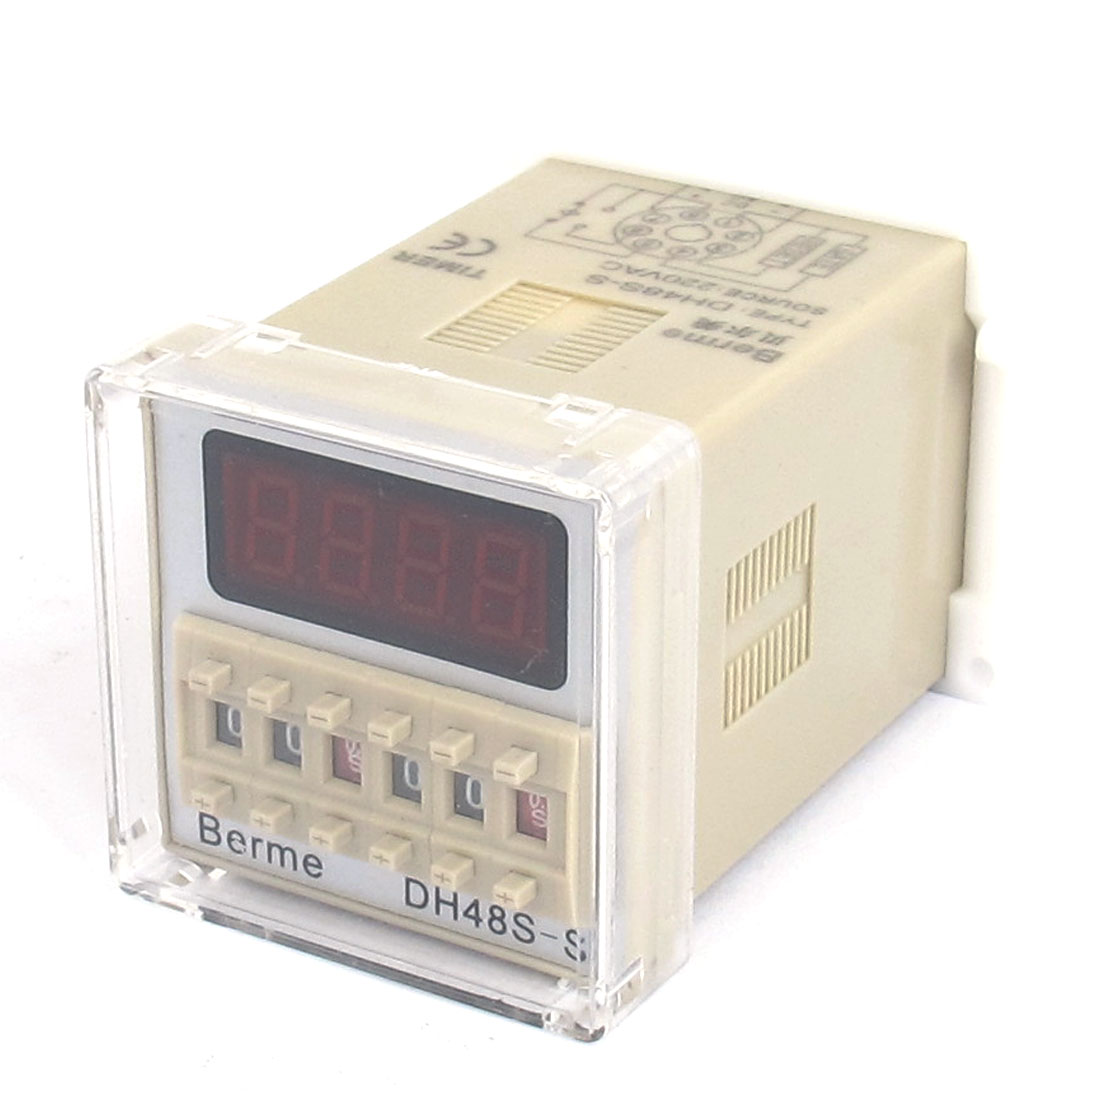 DH48S-S AC 220V 0.1s-99h Programmable Digital Timer Dual Time Delay Relay